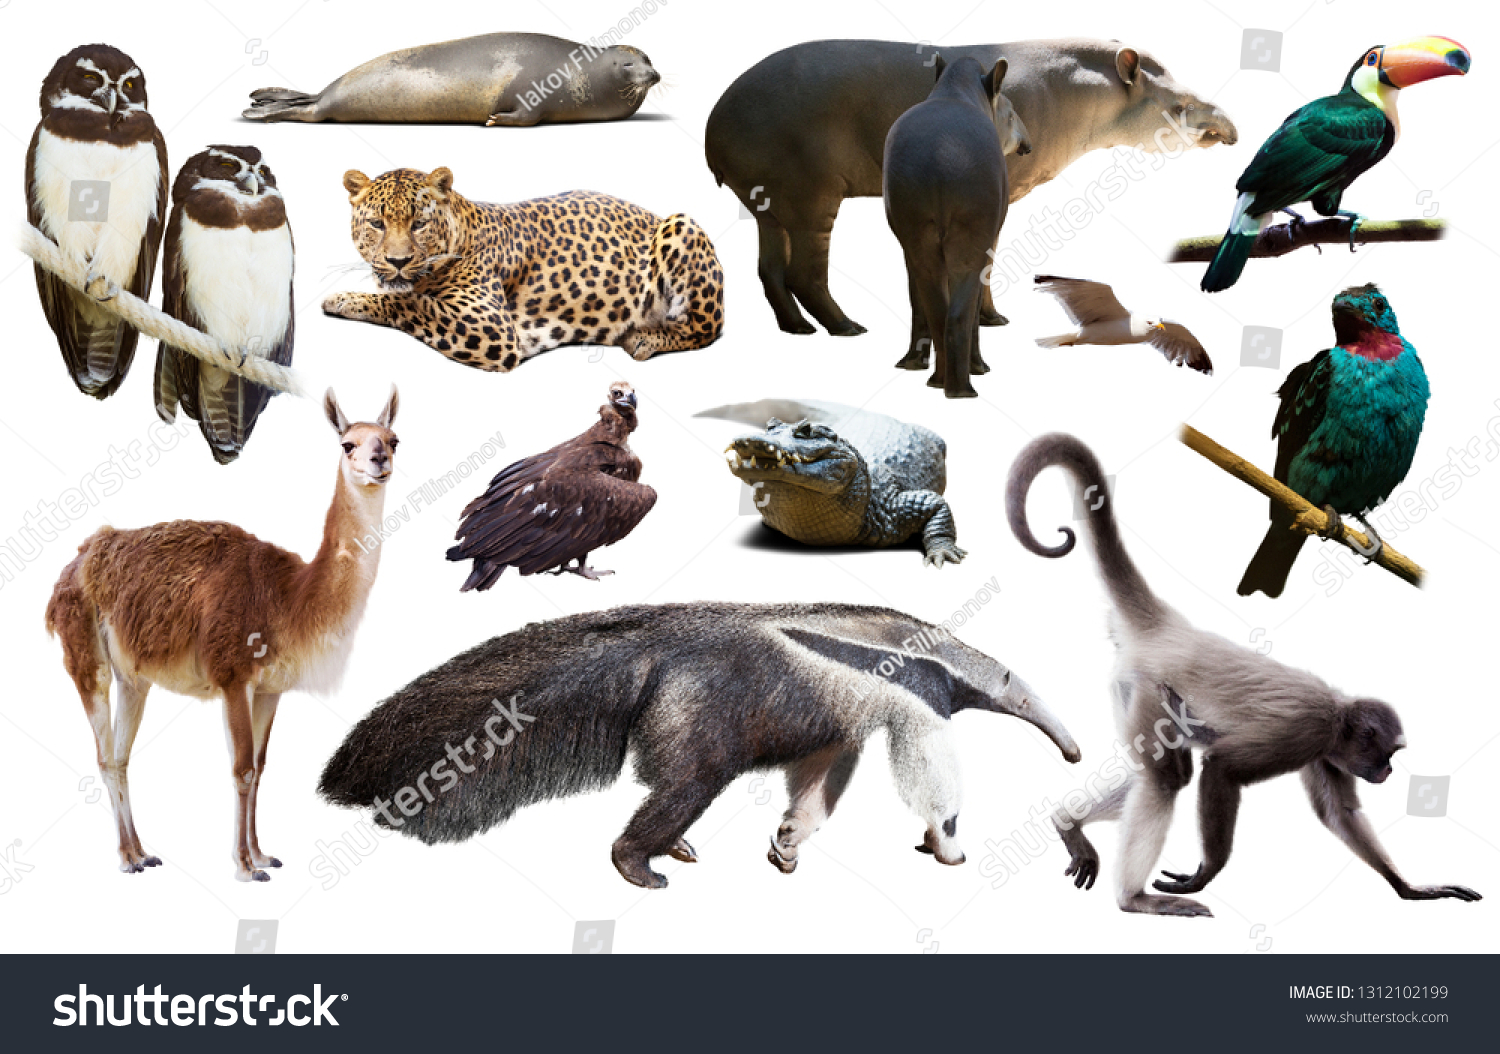 assortment of many south american wild birds, mammals, reptiles and insects isolated on white background